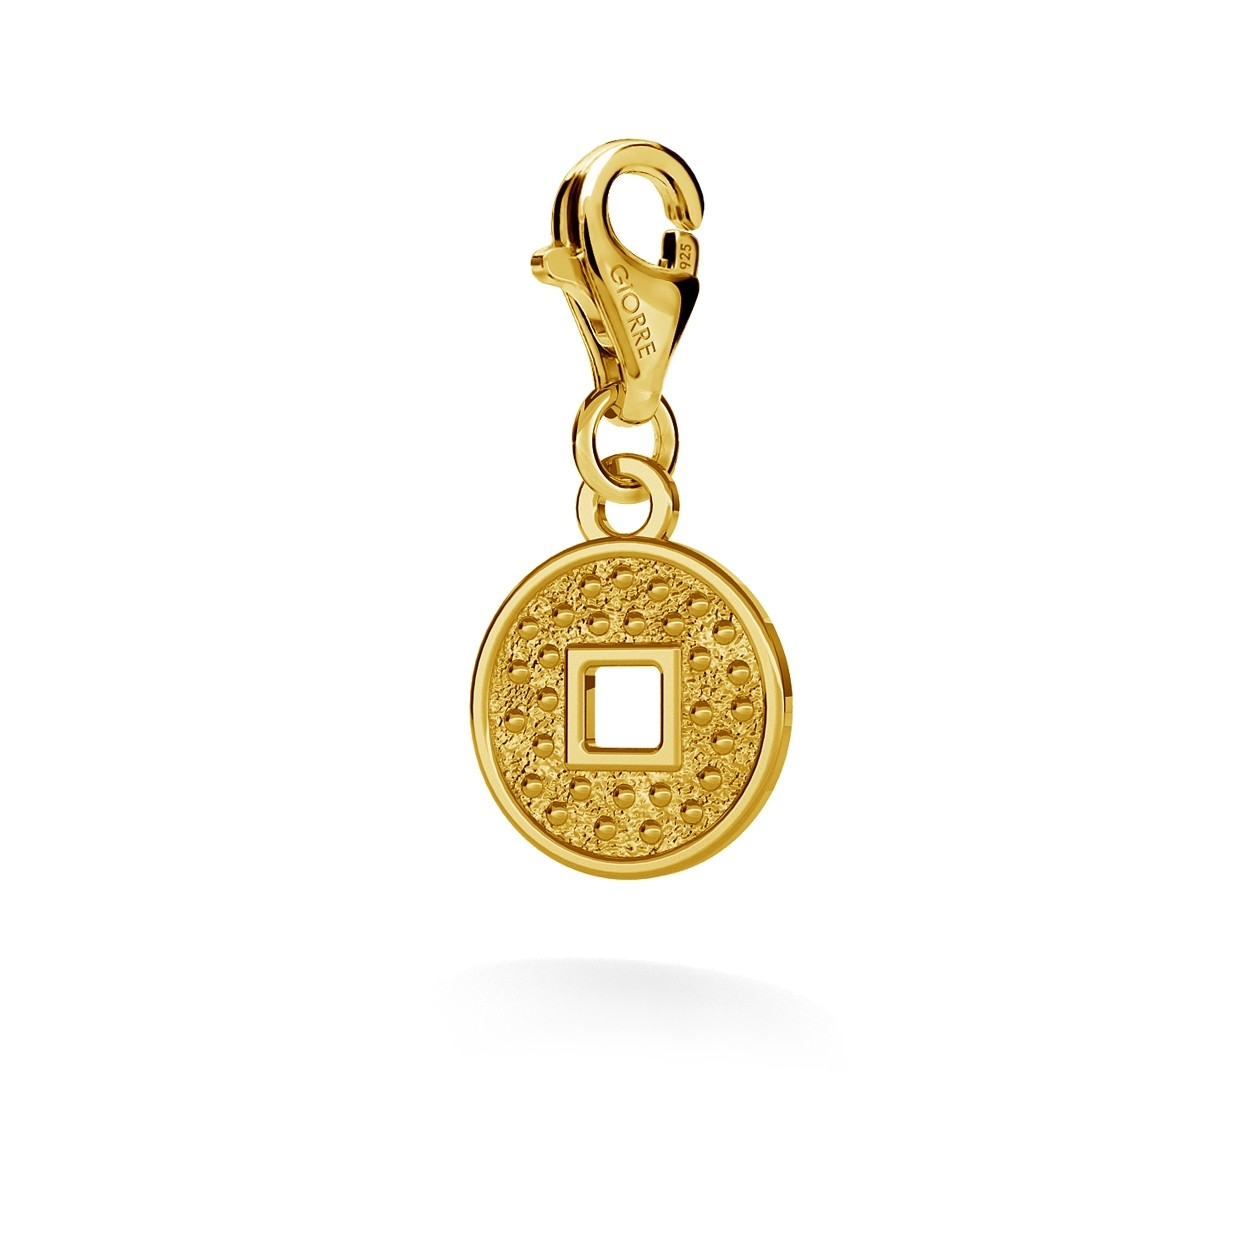 CHARM 40, CHINESE COIN, SILVER 925, RHODIUM OR GOLD PLATED